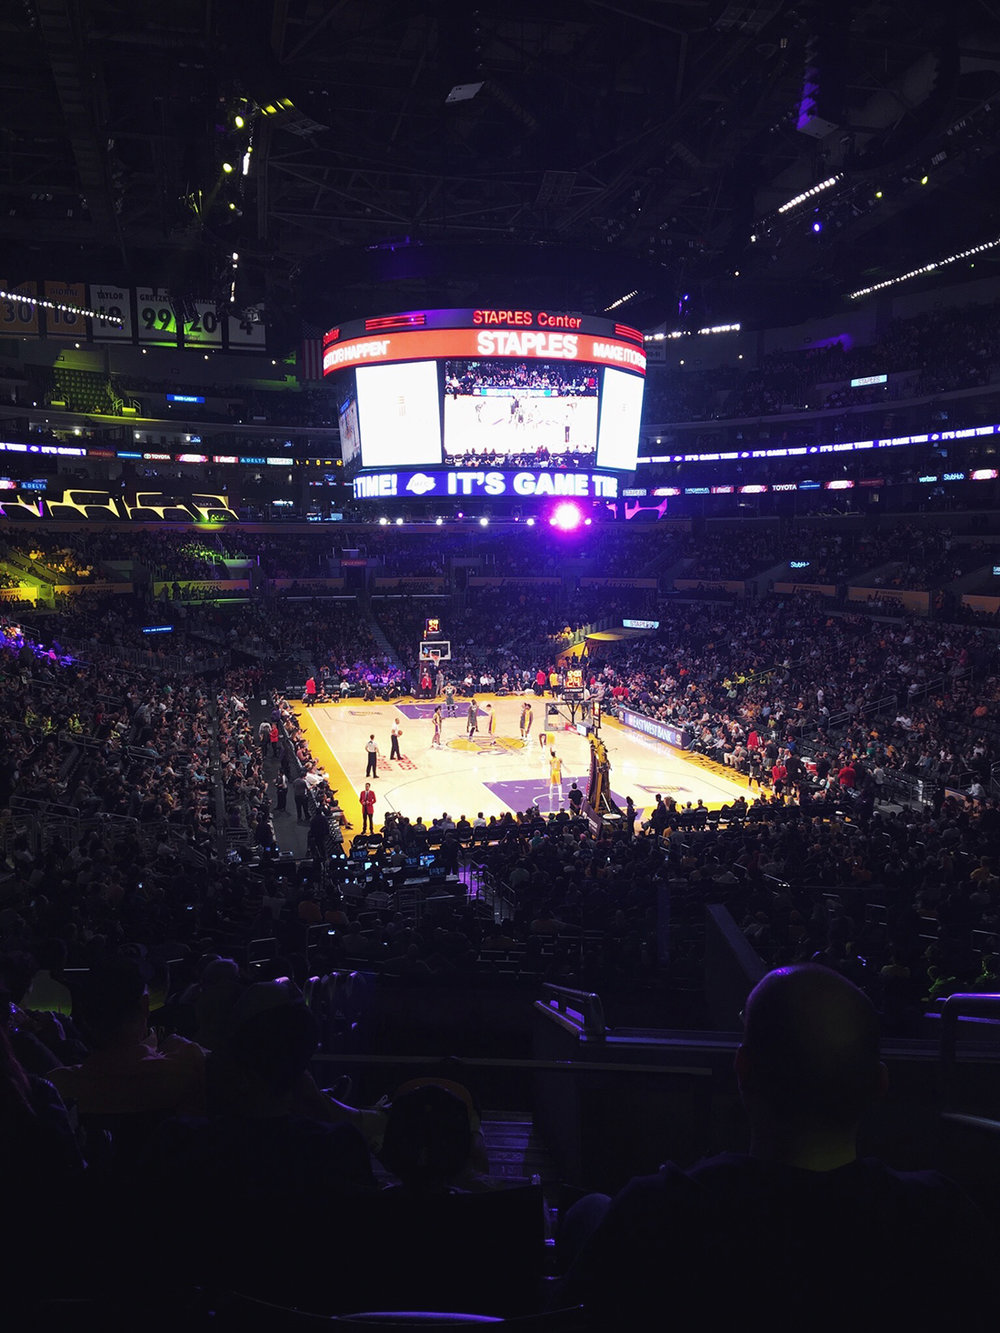 My first Lakers game at the Staples Center! Dear 26-Year-Old Me ... was first seen on beautybyjessika.com.